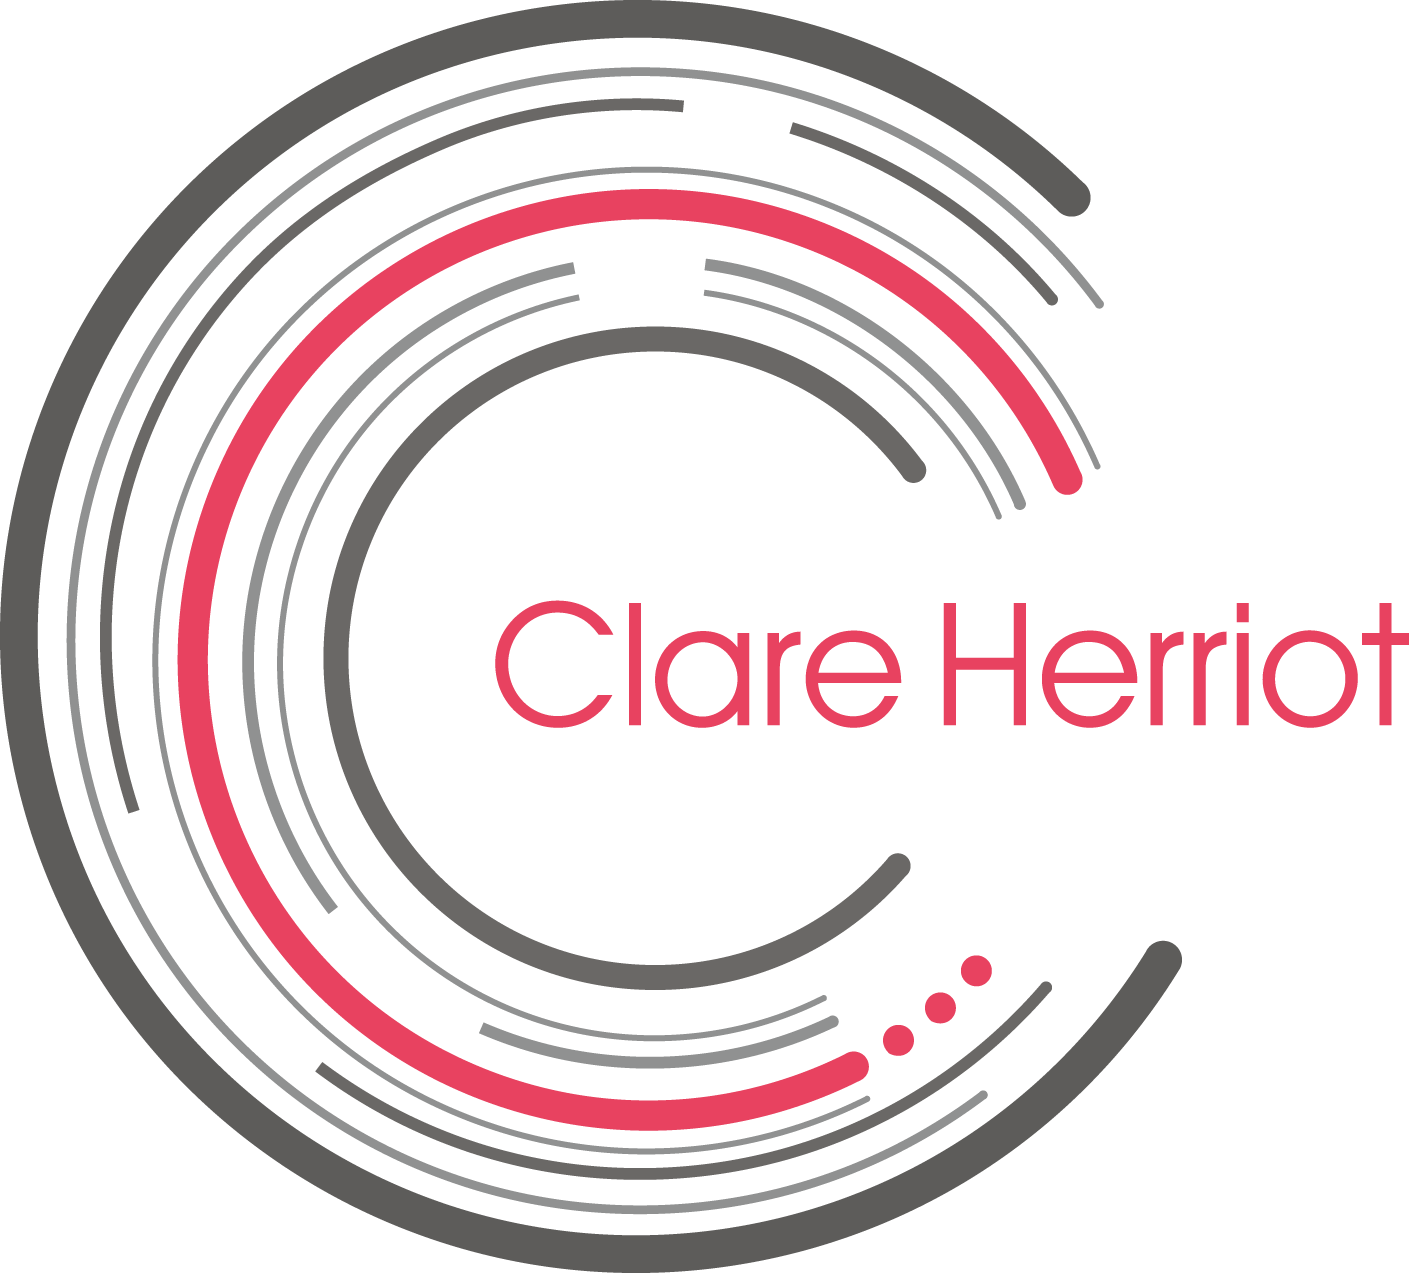 Clare Herriot Communications